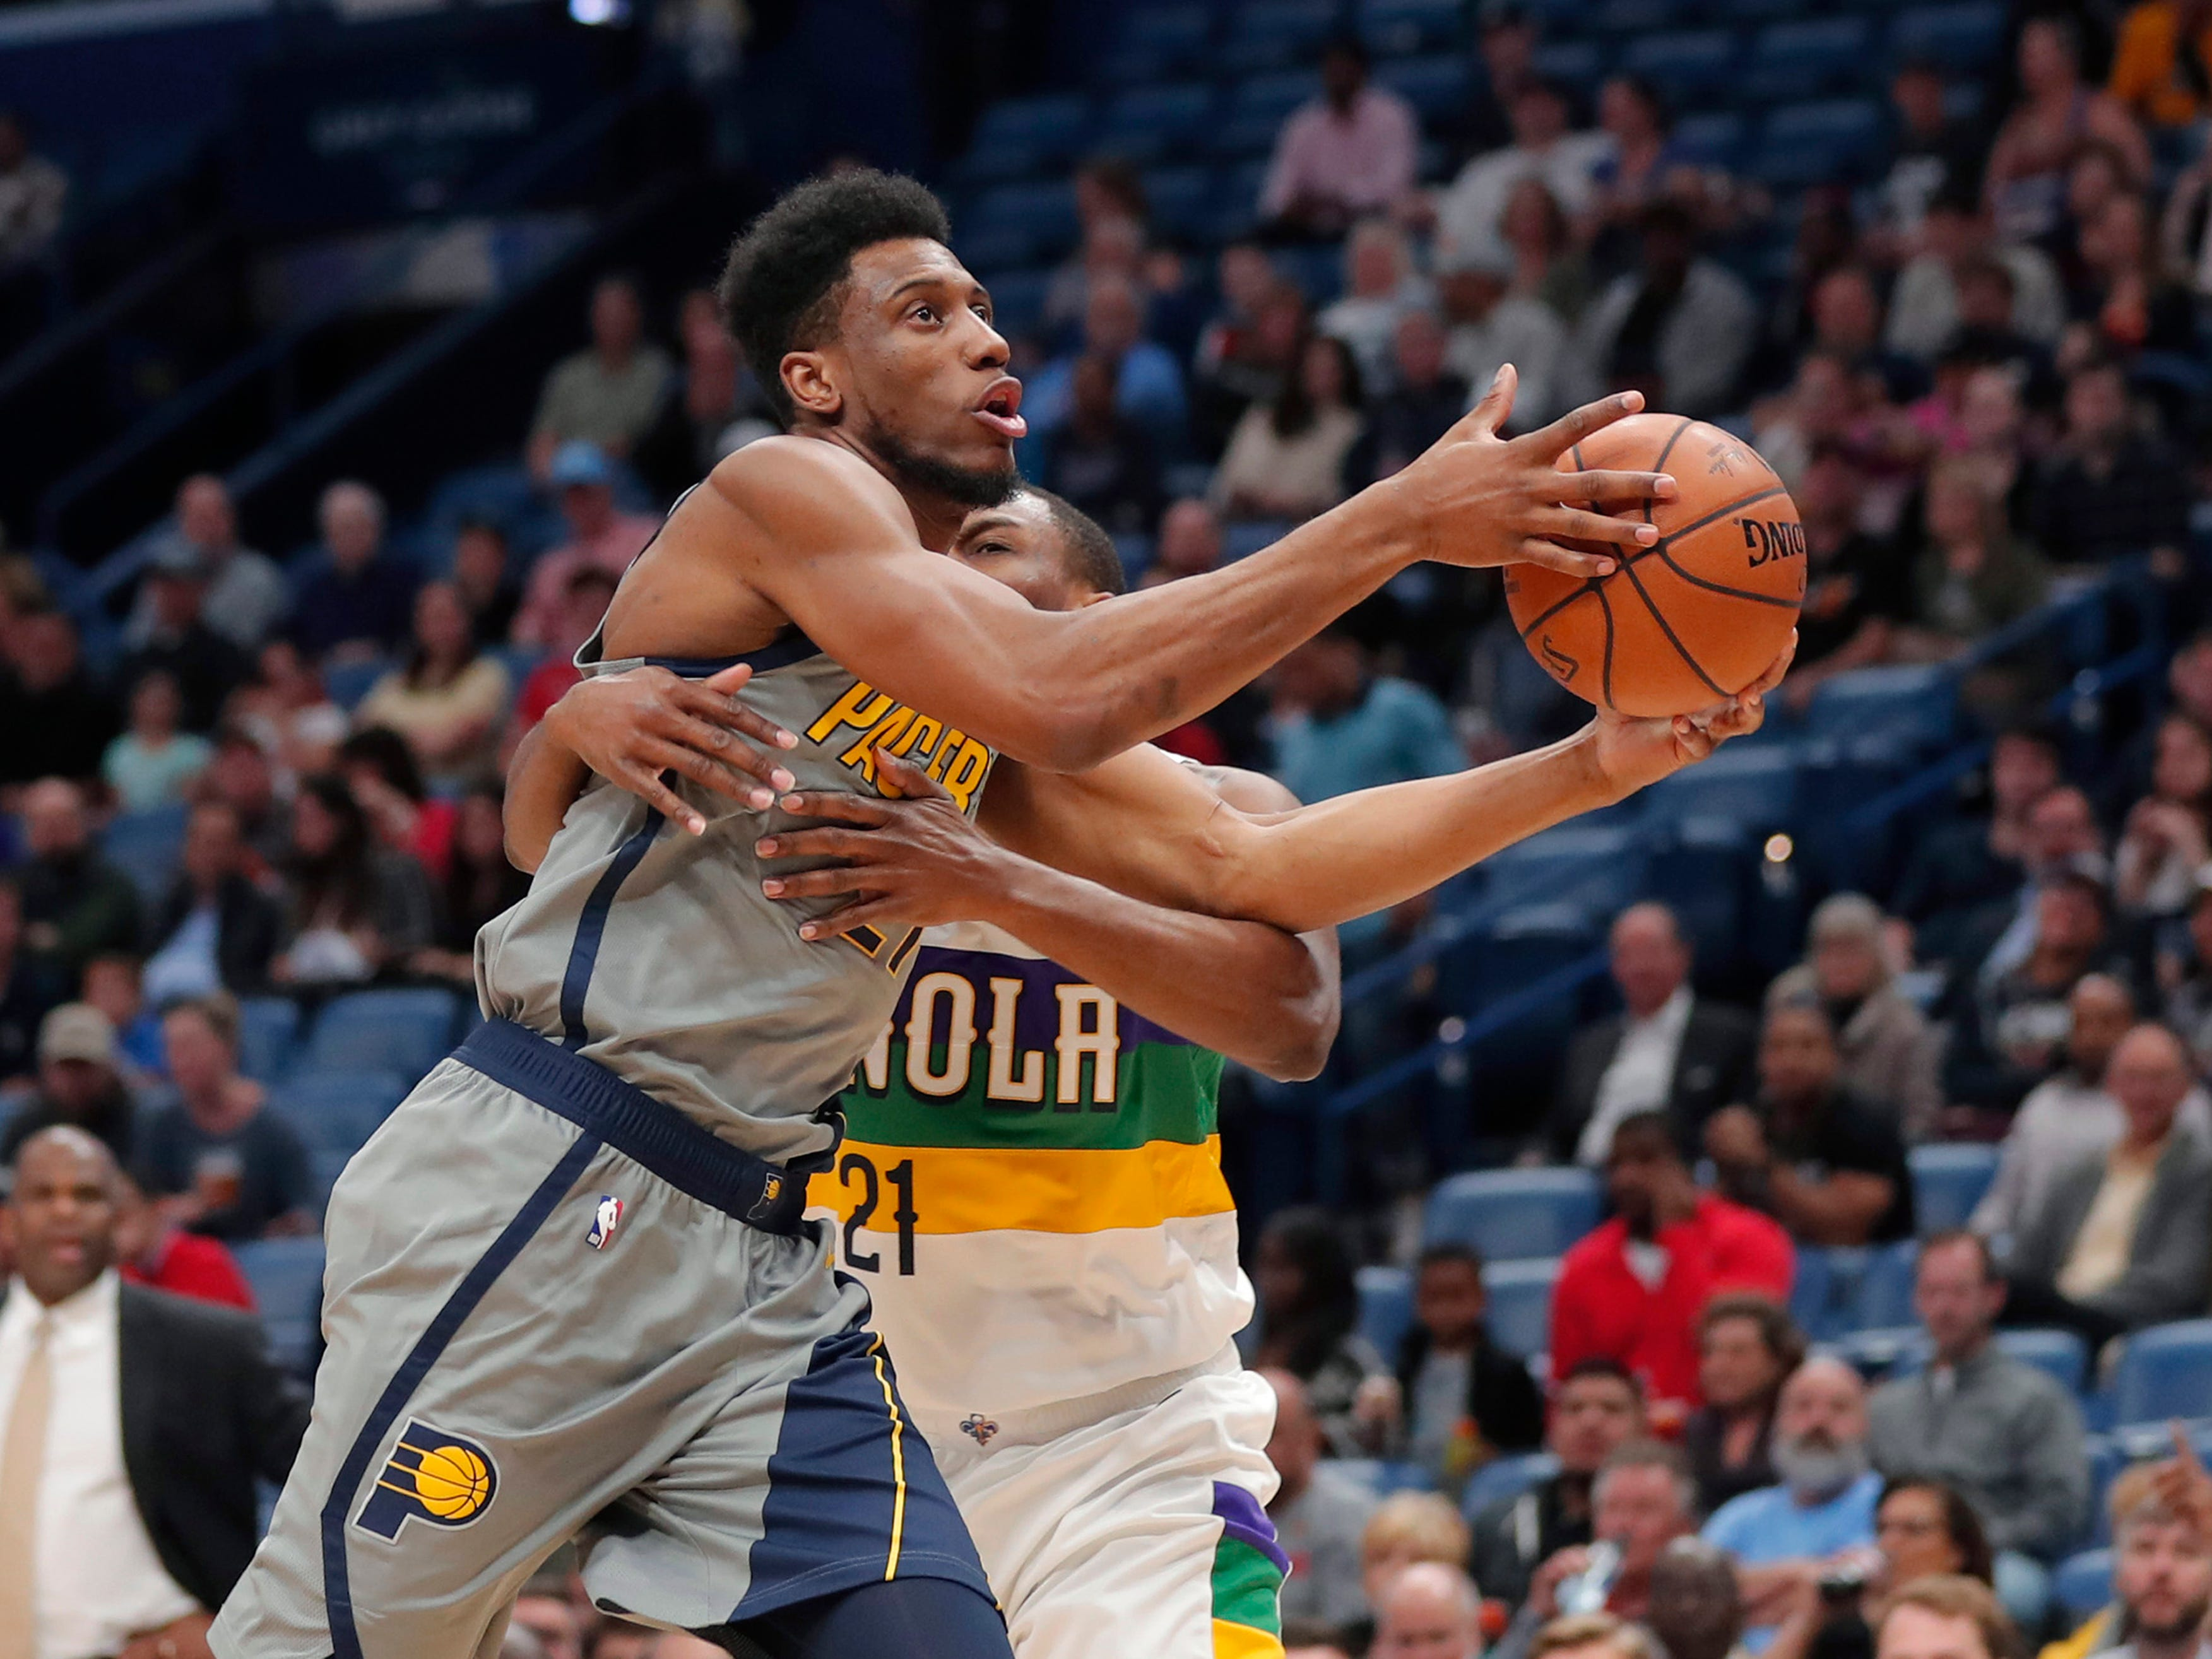 Indiana Pacers forward Thaddeus Young (21) is fouled by New Orleans Pelicans forward Darius Miller as he drives to the basket in the first half of an NBA basketball game in New Orleans, Monday, Feb. 4, 2019.